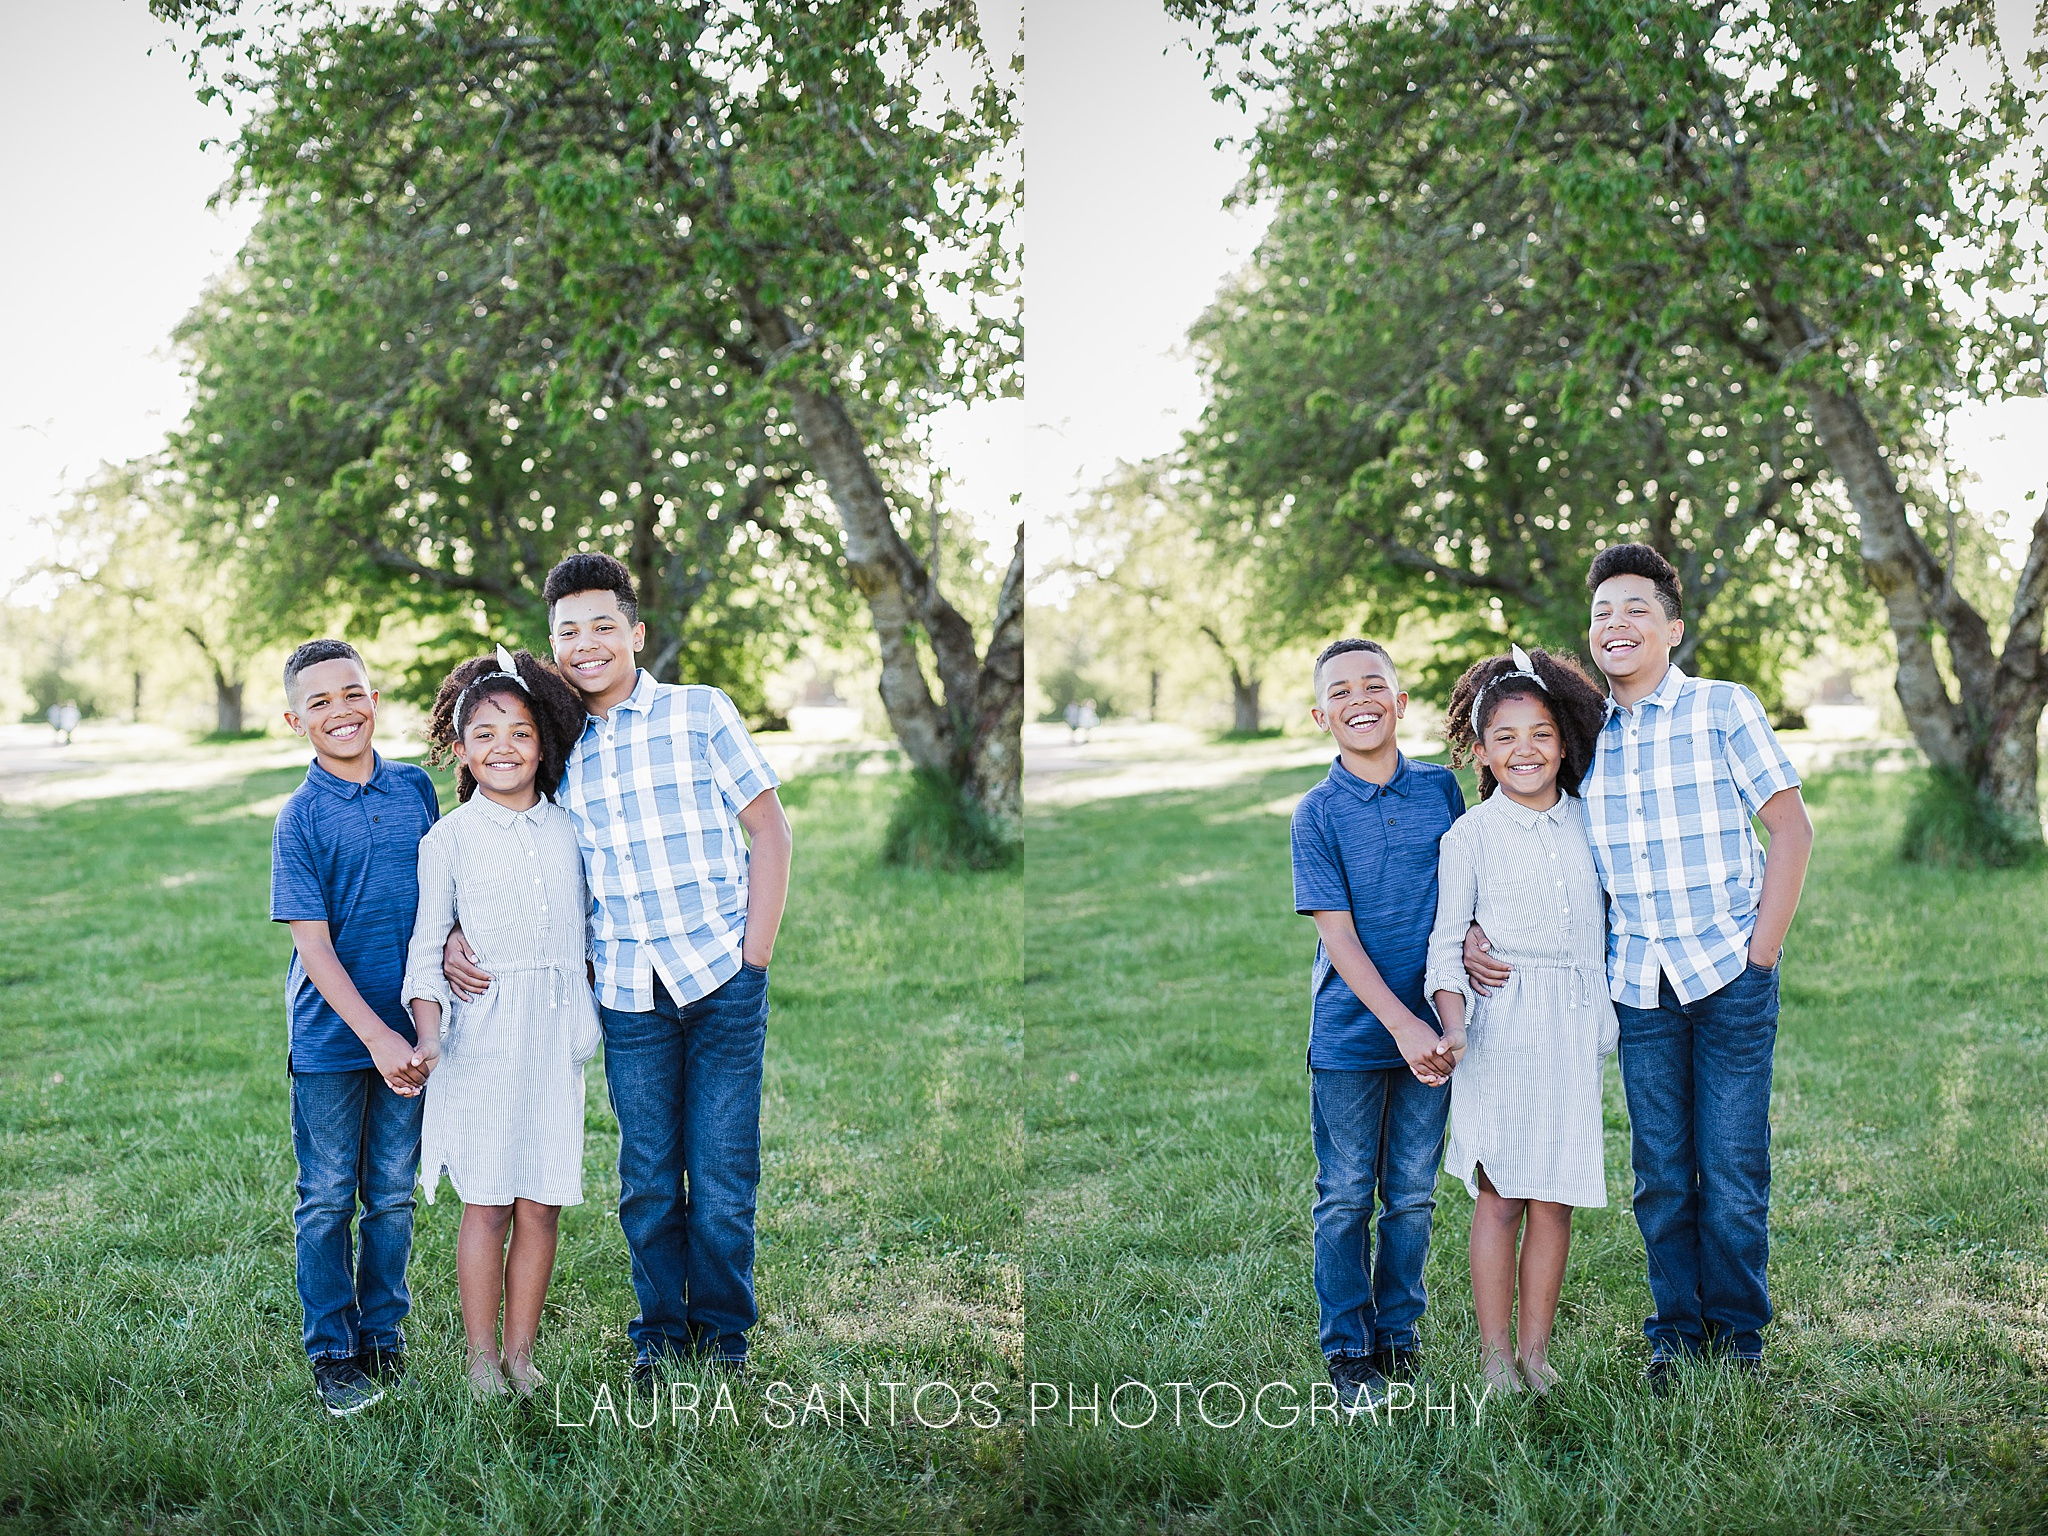 Laura Santos Photography Portland Oregon Family Photographer_0949.jpg